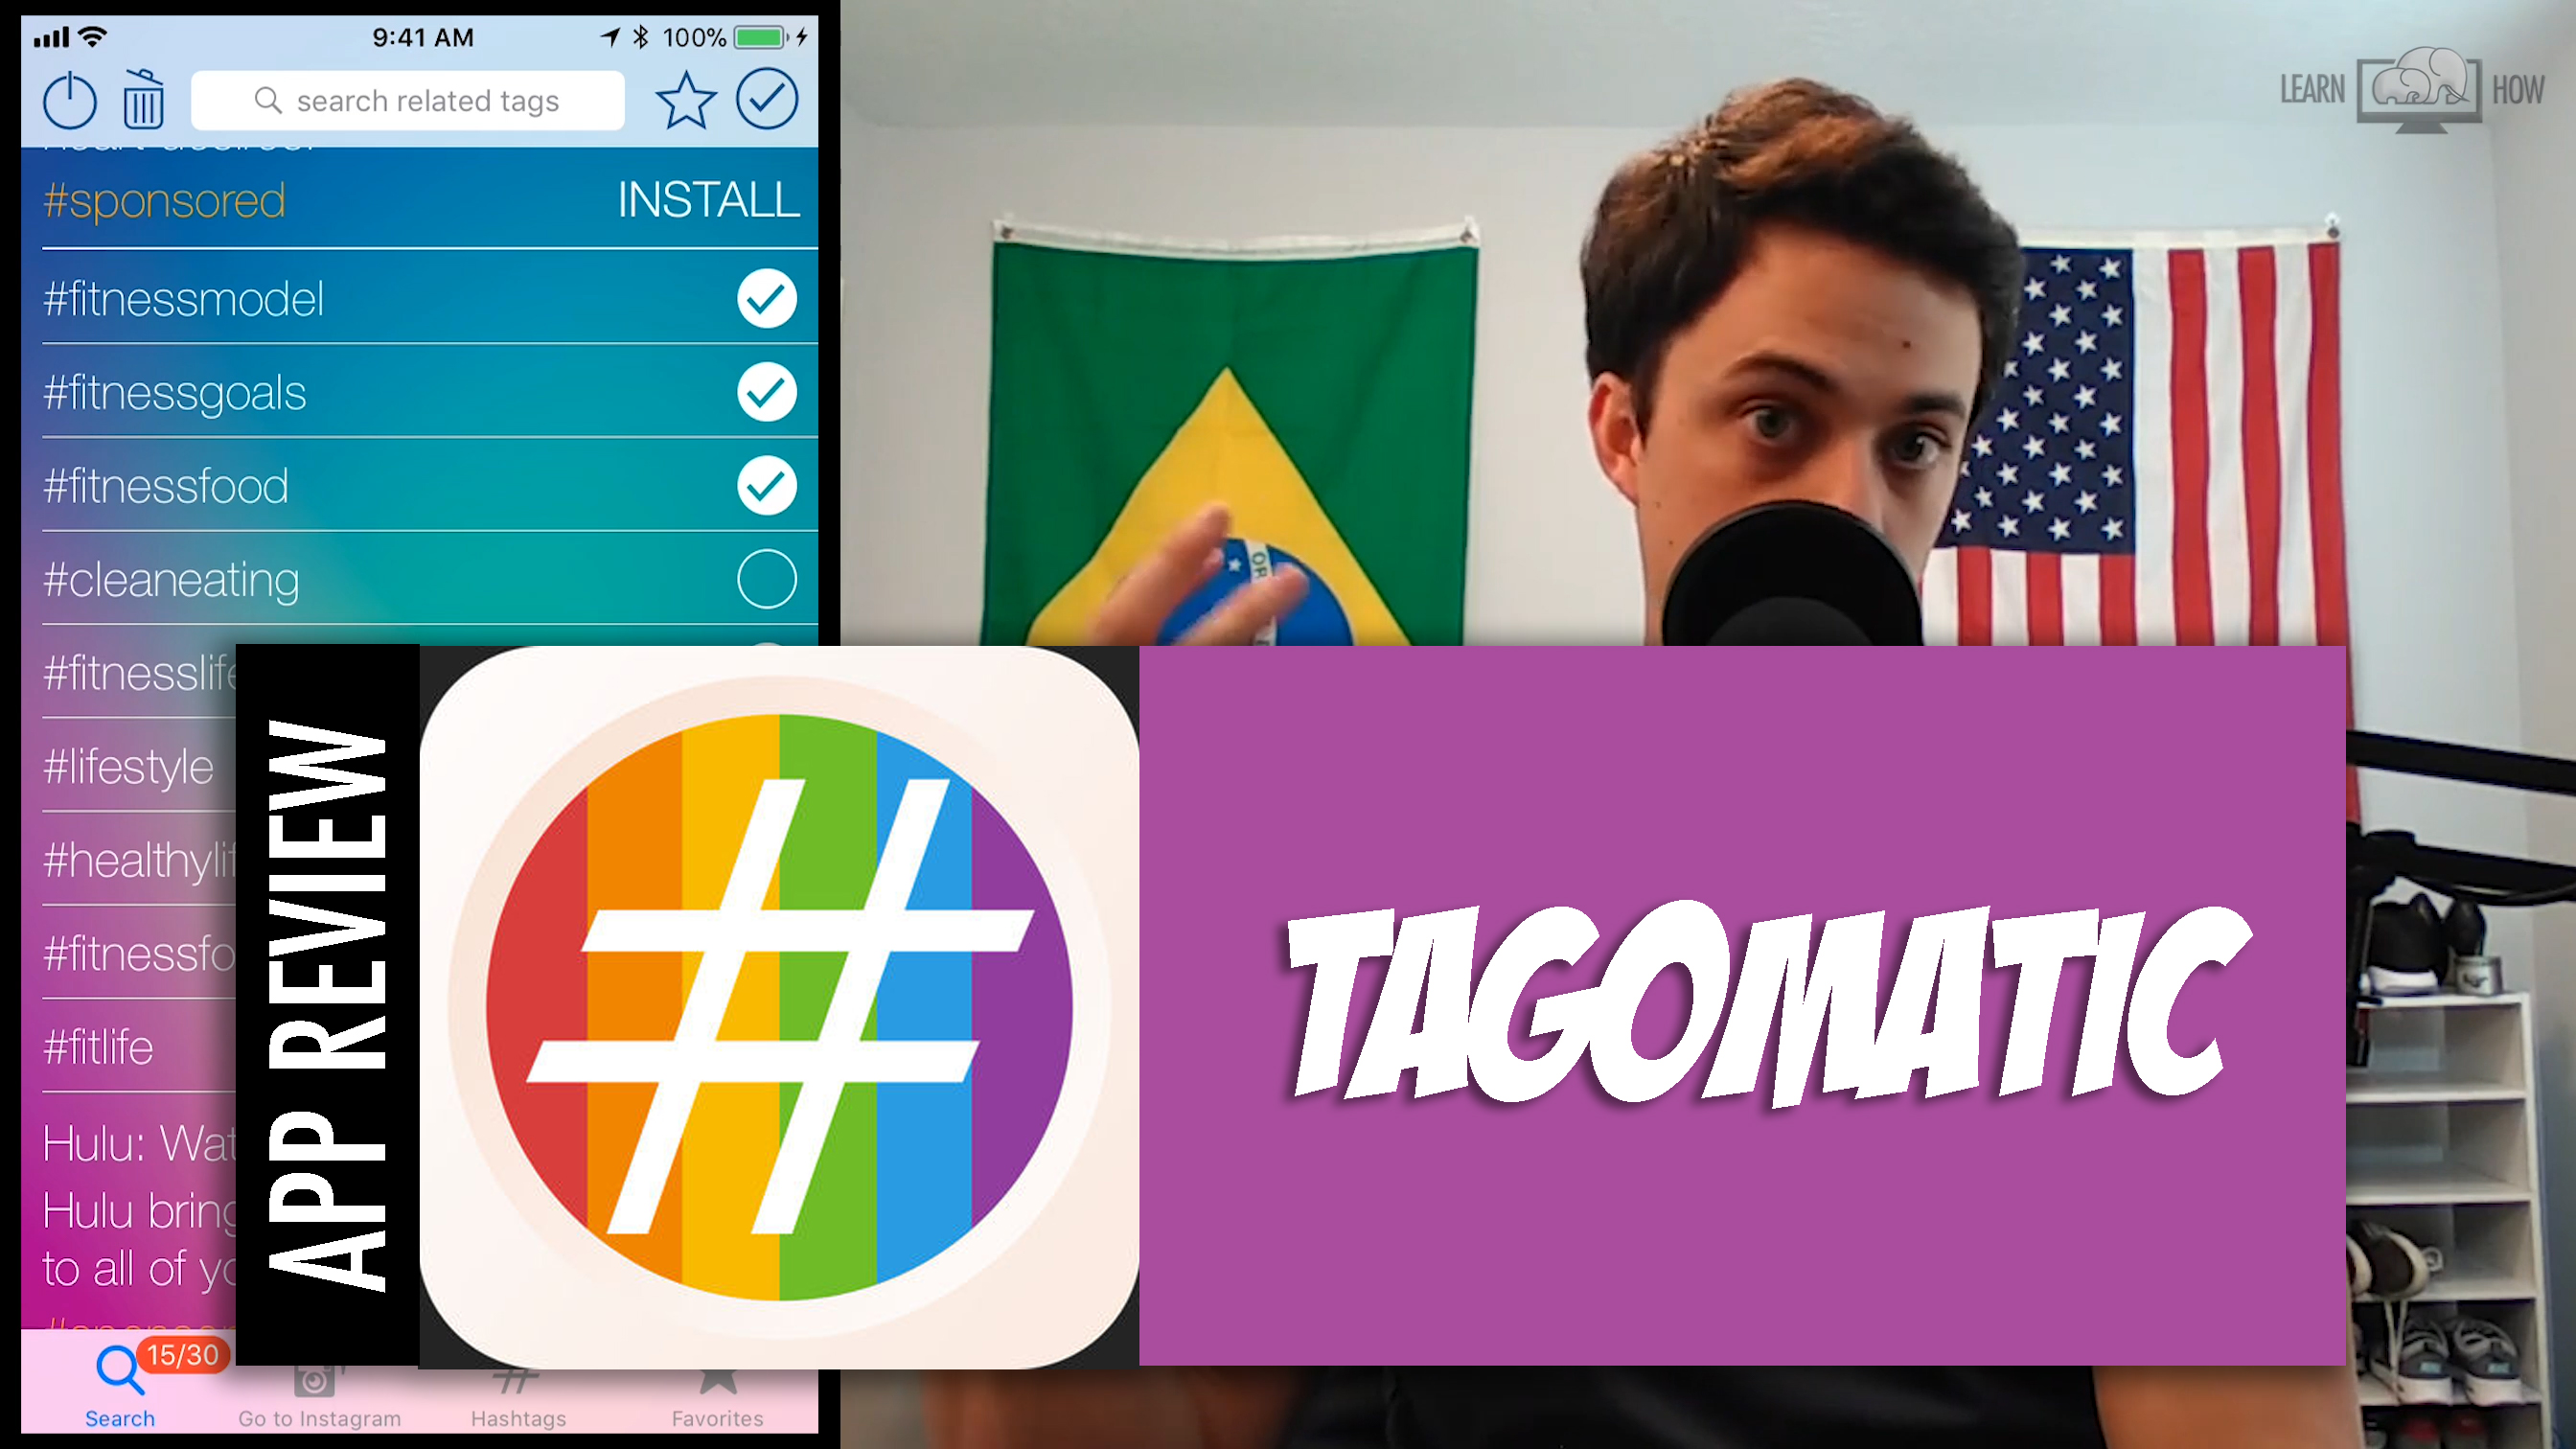 Tagomatic – Bulk Add Popular Hashtags to Your Instagram Posts